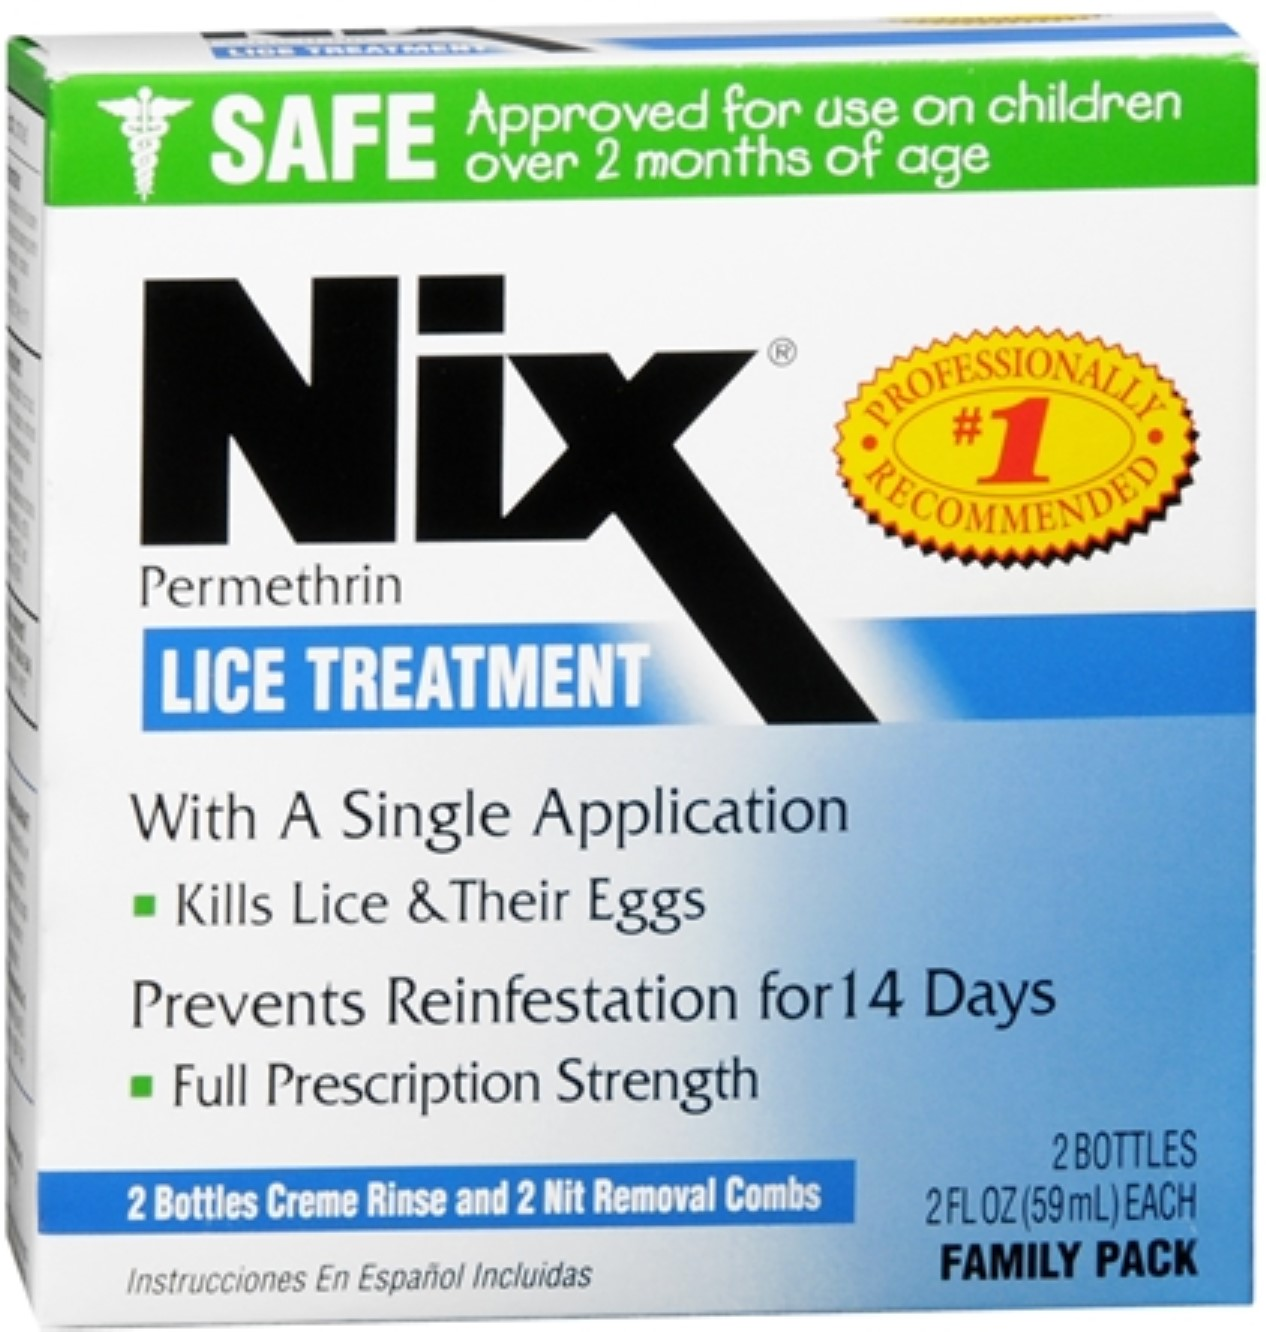 Nix Lice Treatment Family Pack 4 oz